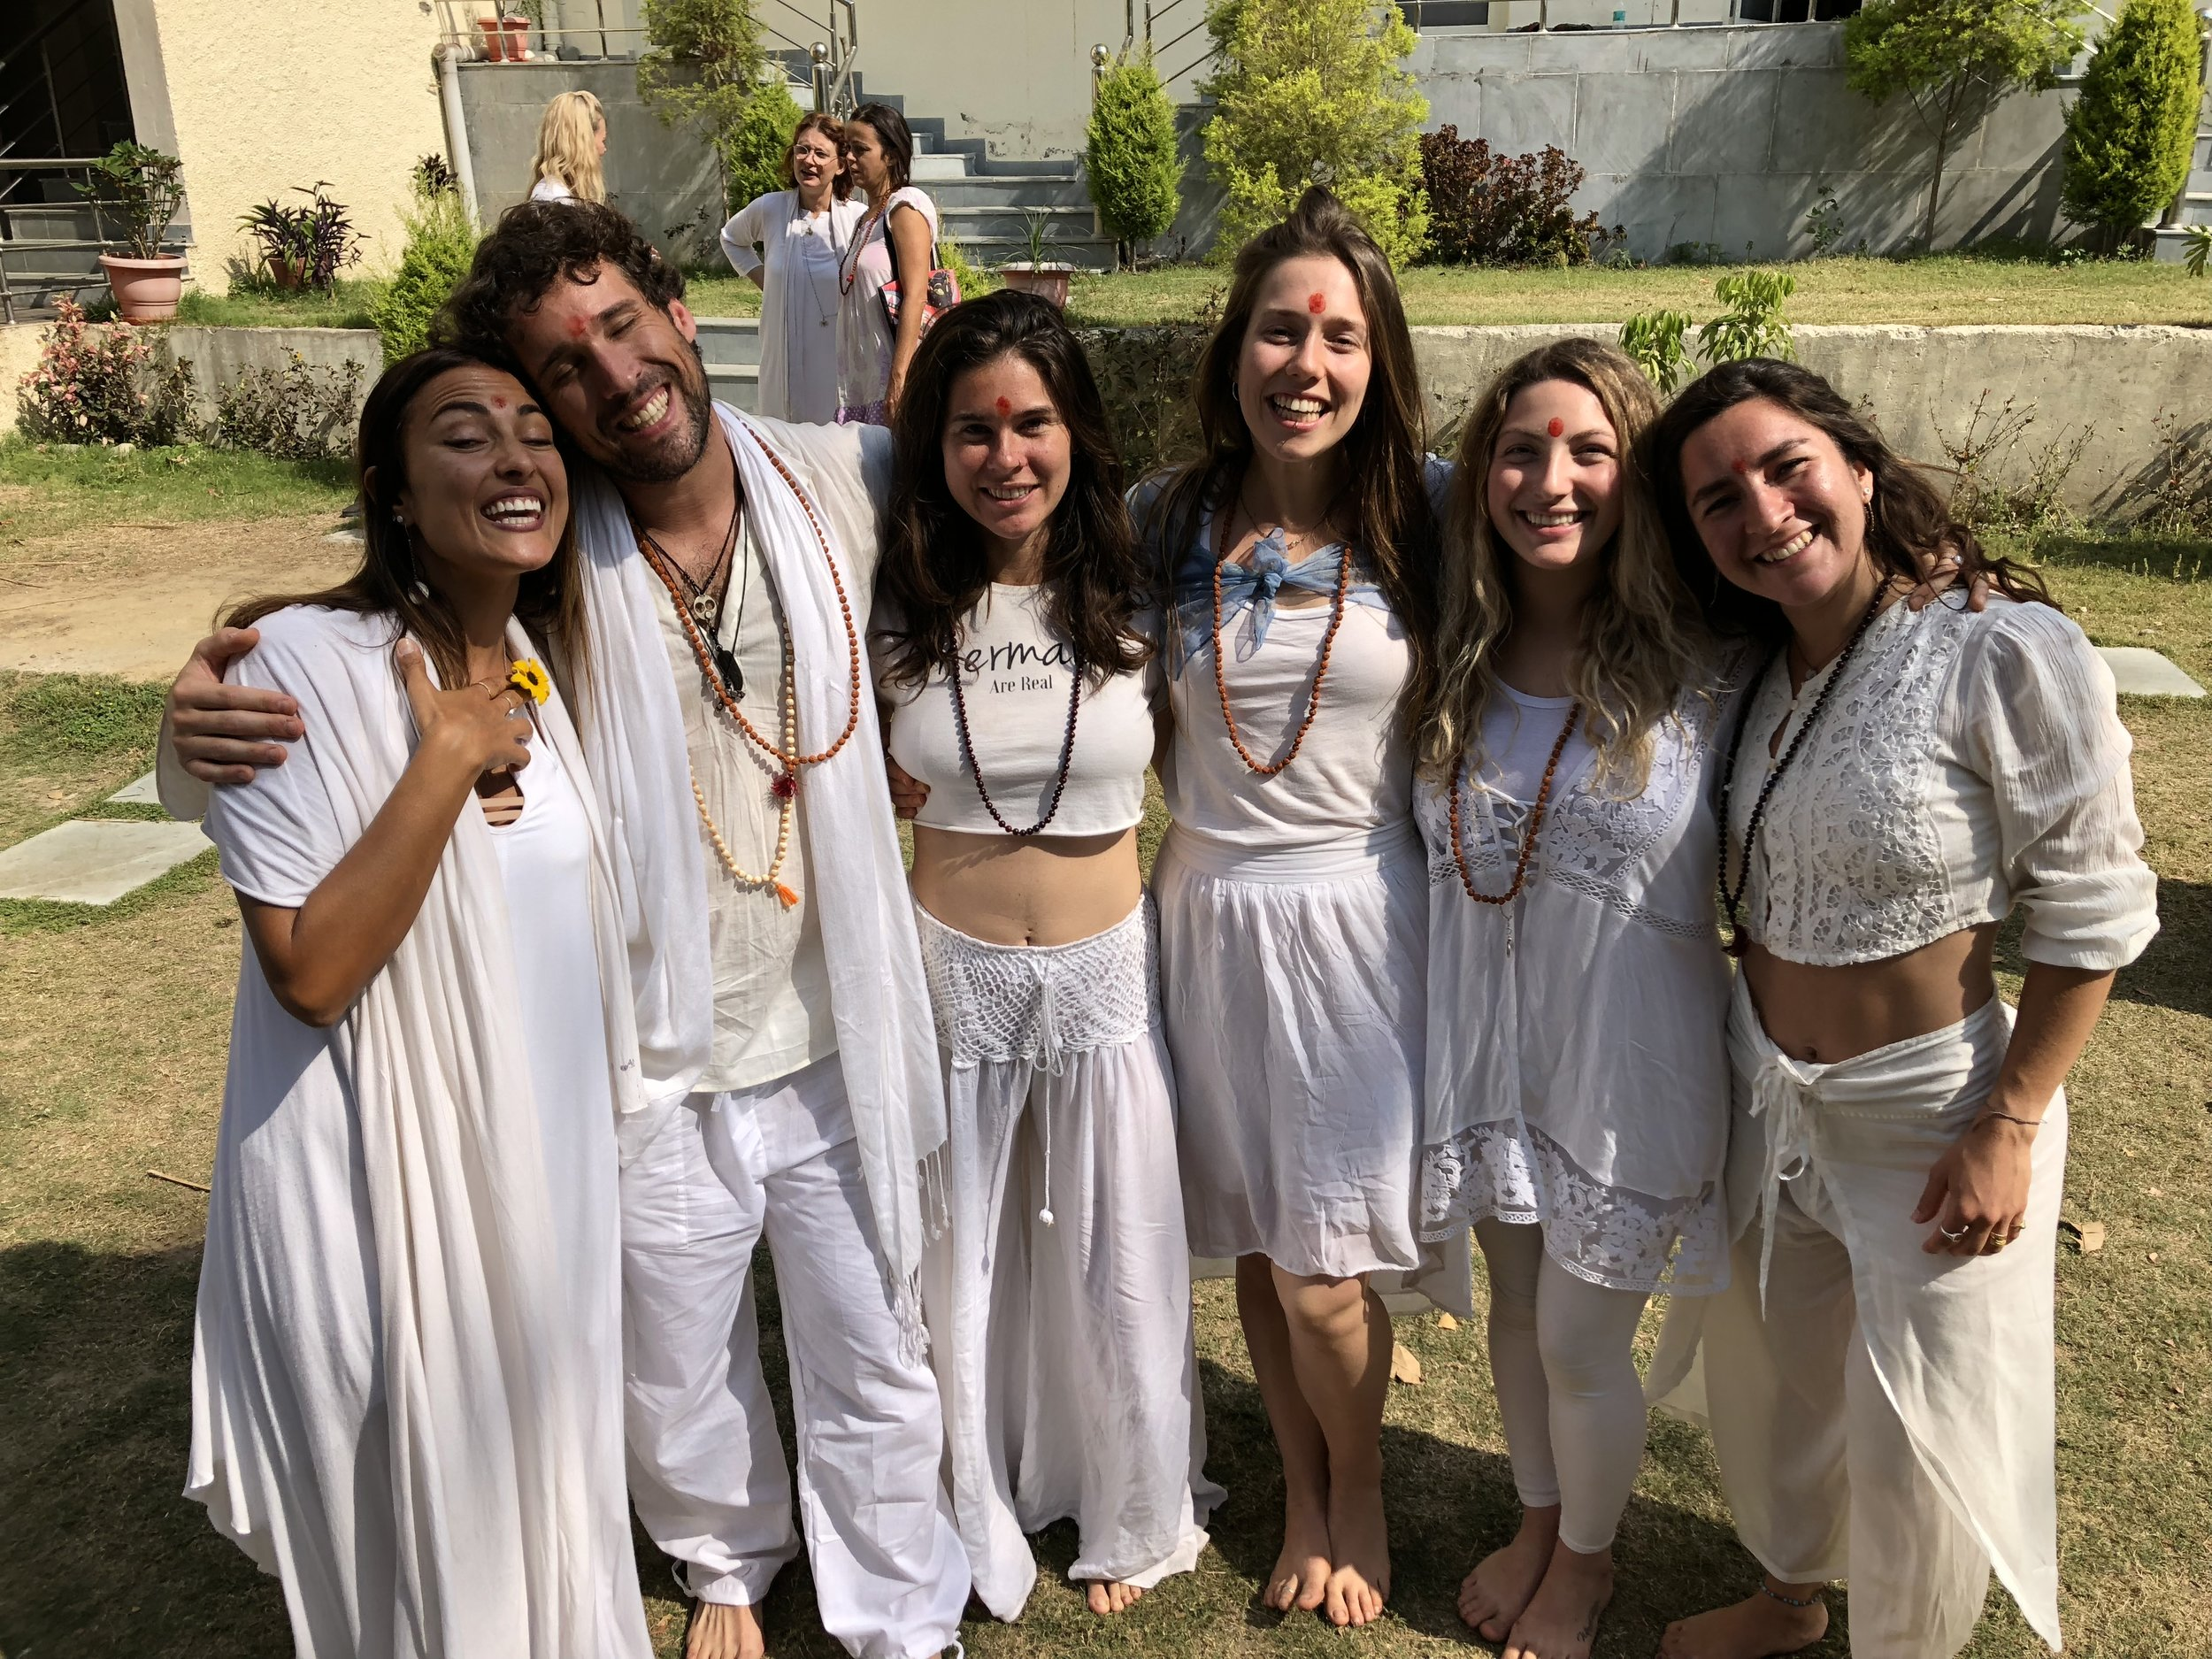 Family is so important, and that's exactly what you build at Sattva, and through a dedicated spiritual practice.